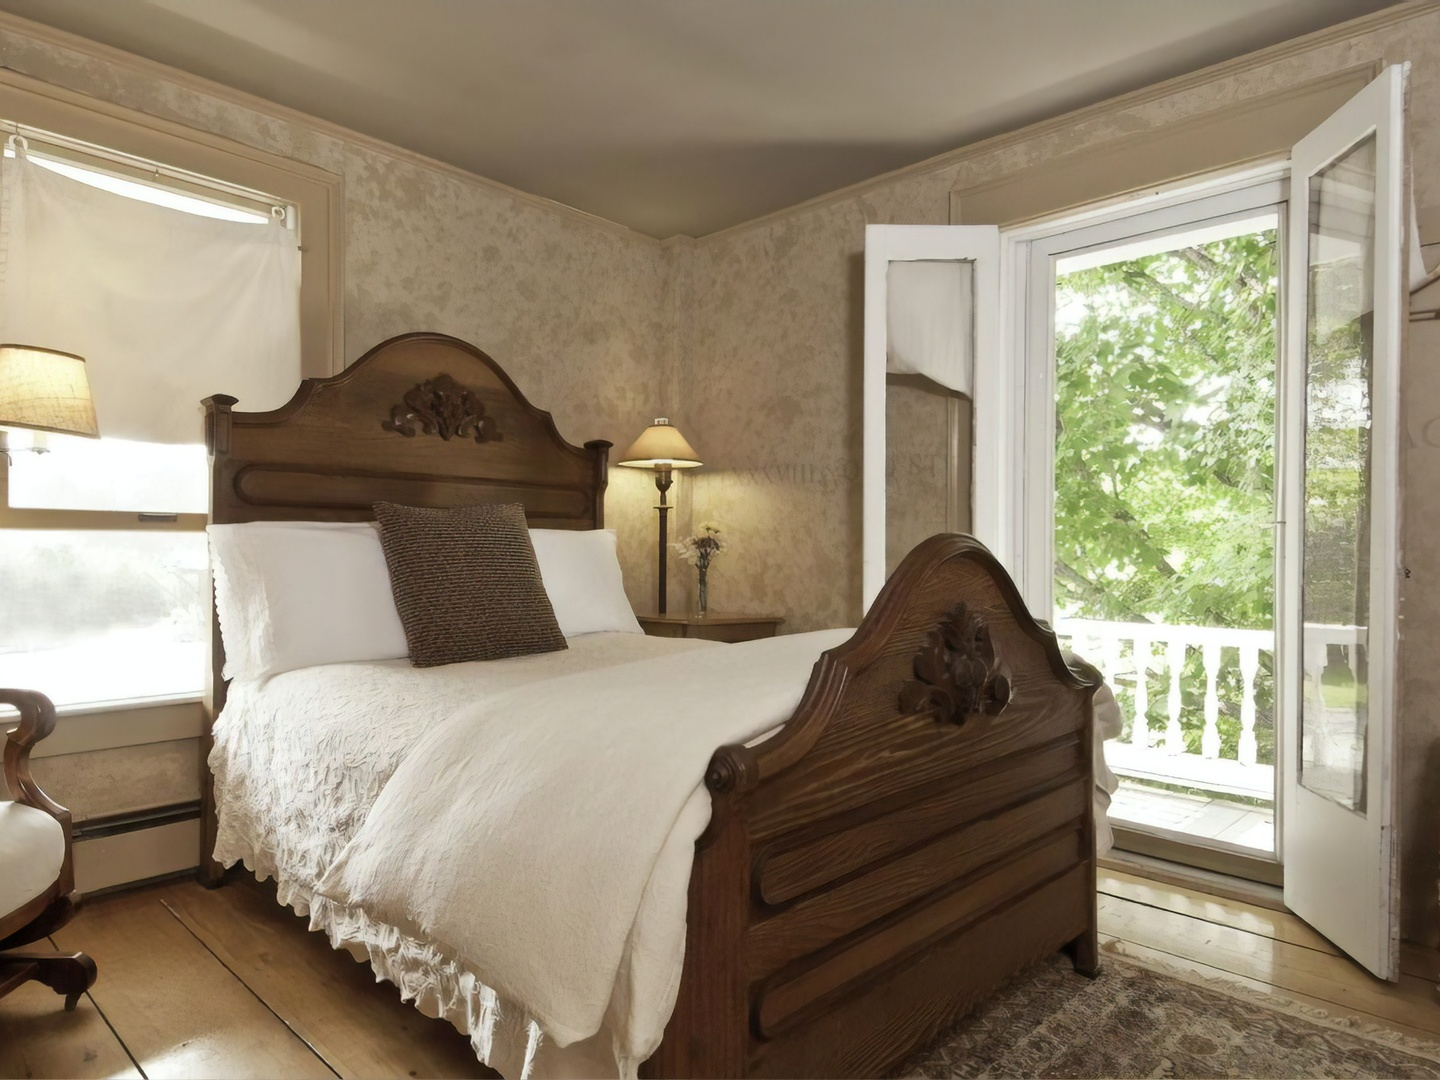 A bedroom with a bed and a window at Golden Stage Inn Bed and Breakfast.